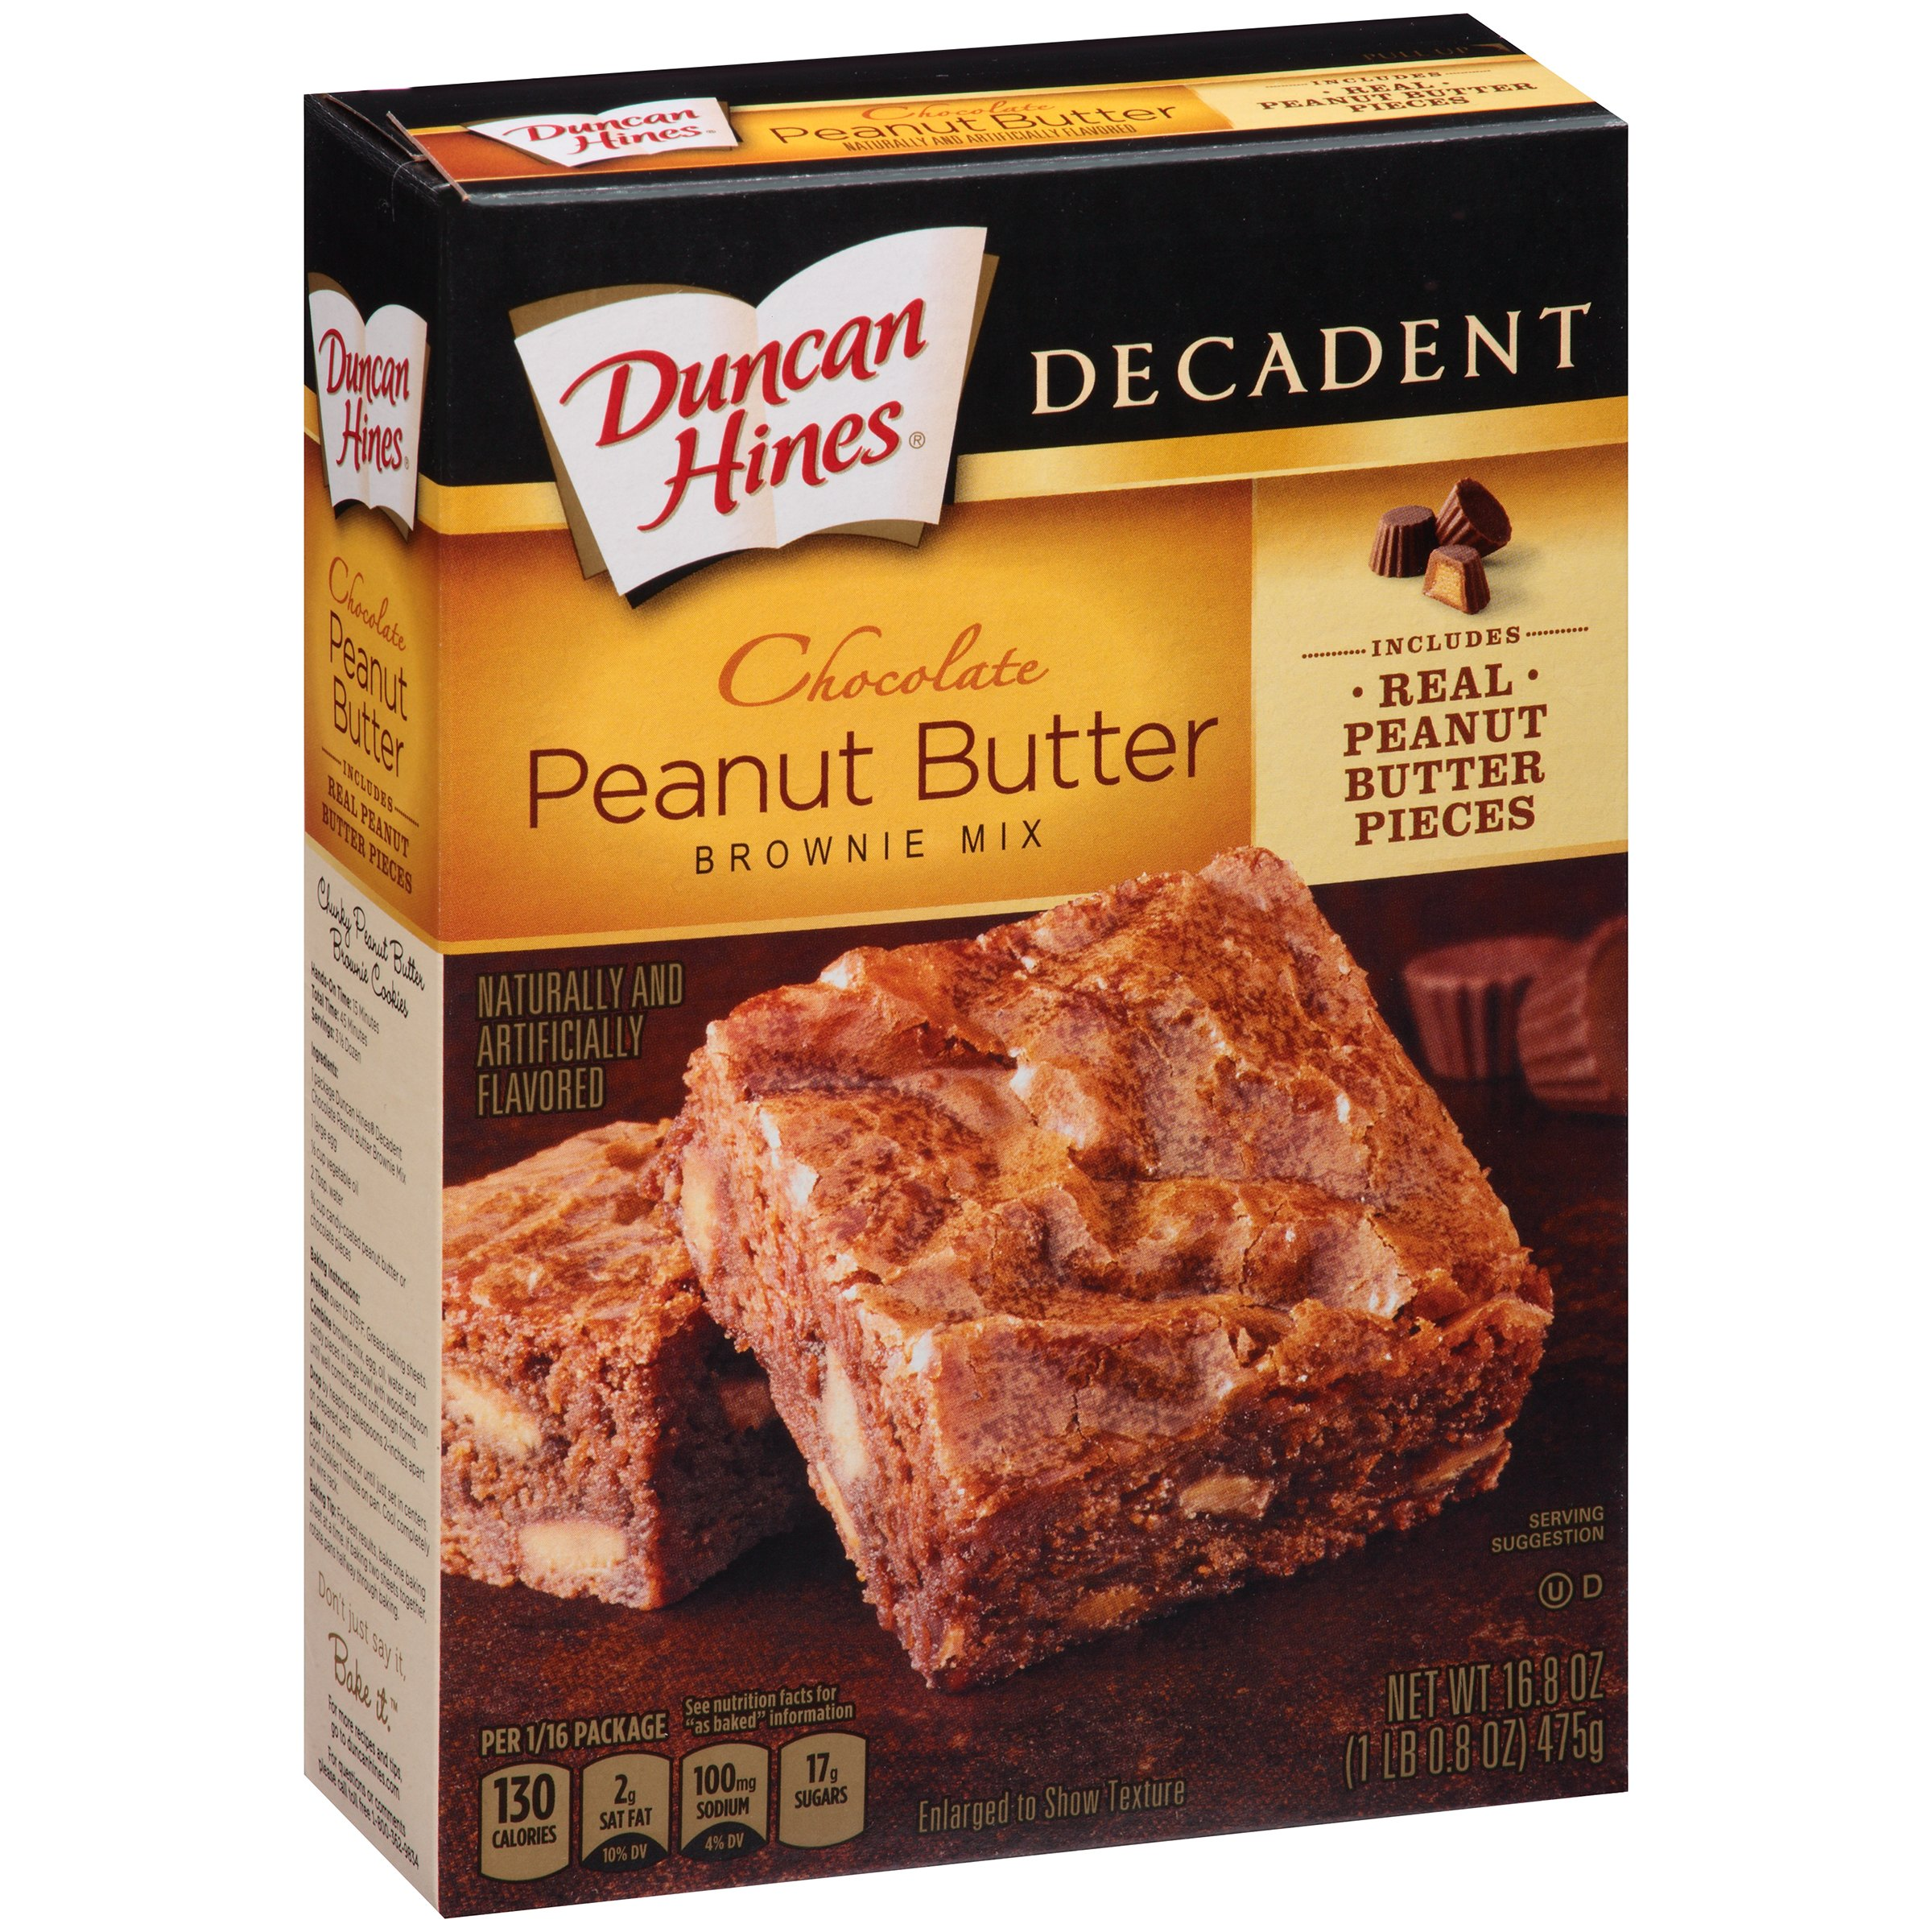 Duncan Hines® Decadent Chocolate Peanut Butter Brownie Mix 16.8 oz. Box